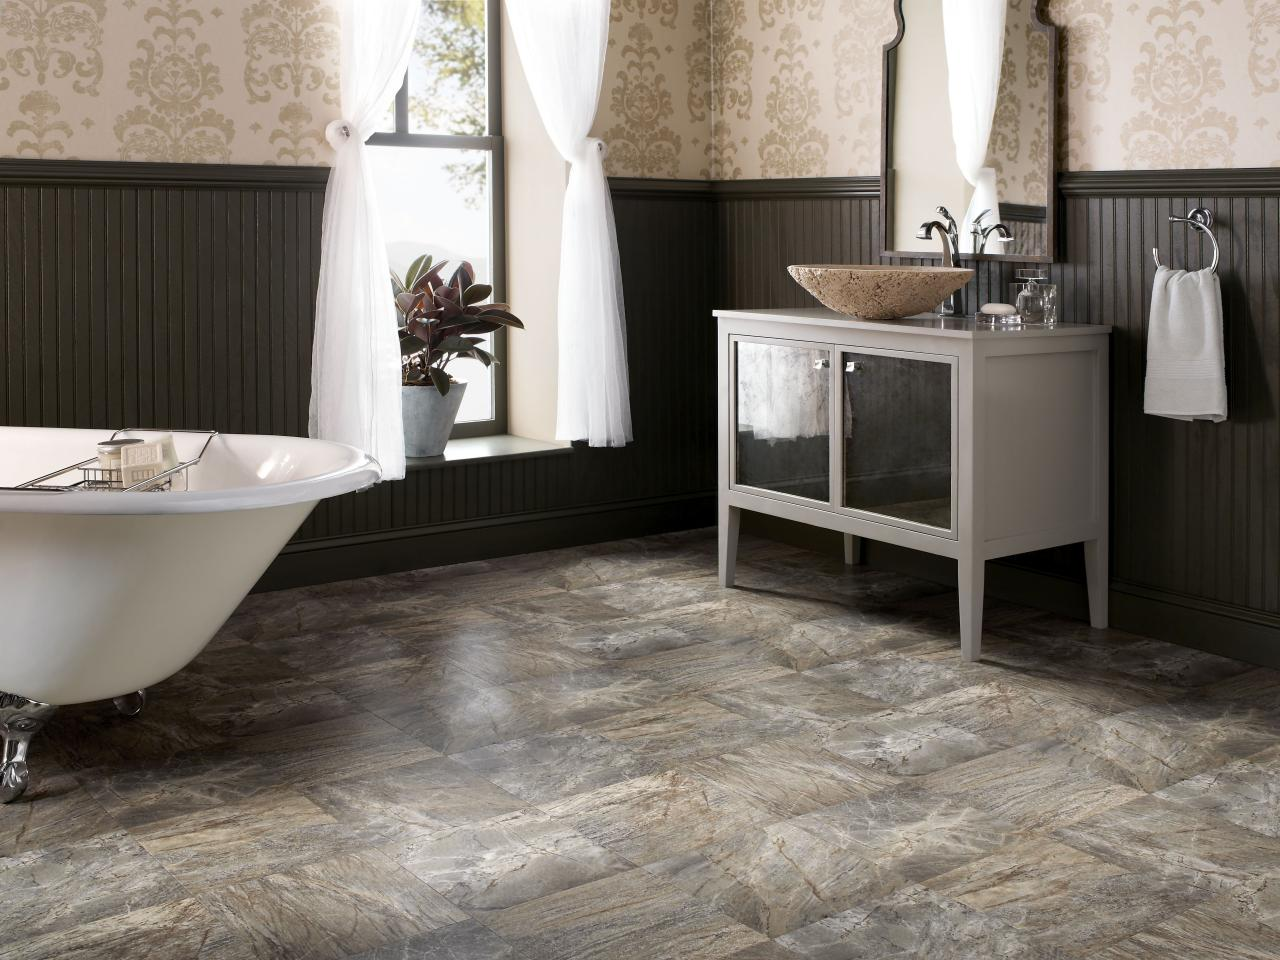 Bathroom flooring options for Warm feel bathroom floor tiles